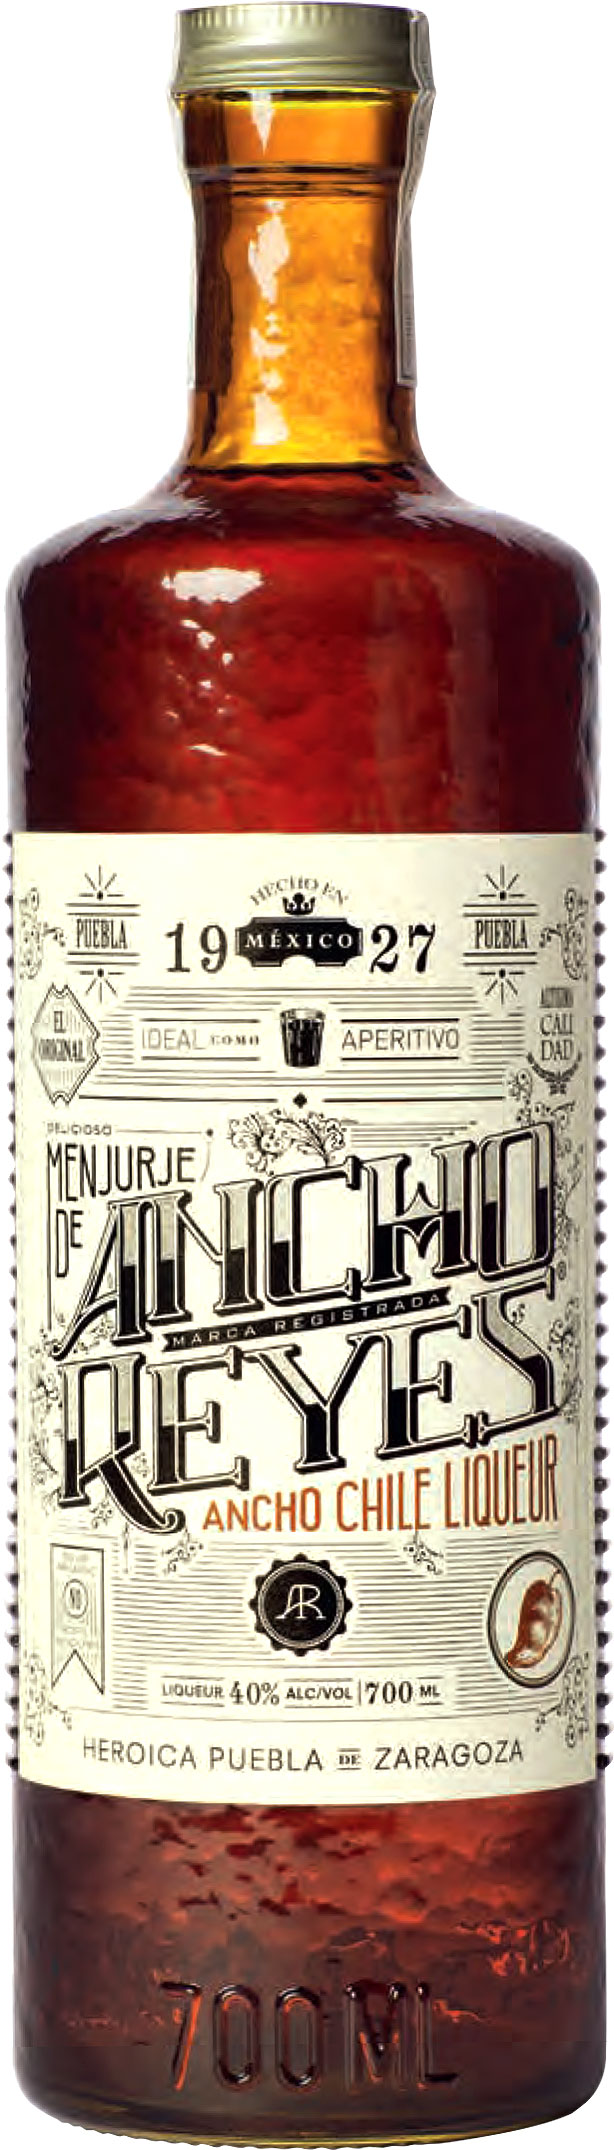 Ancho Reyes - Chile Liqueur 70cl Bottle